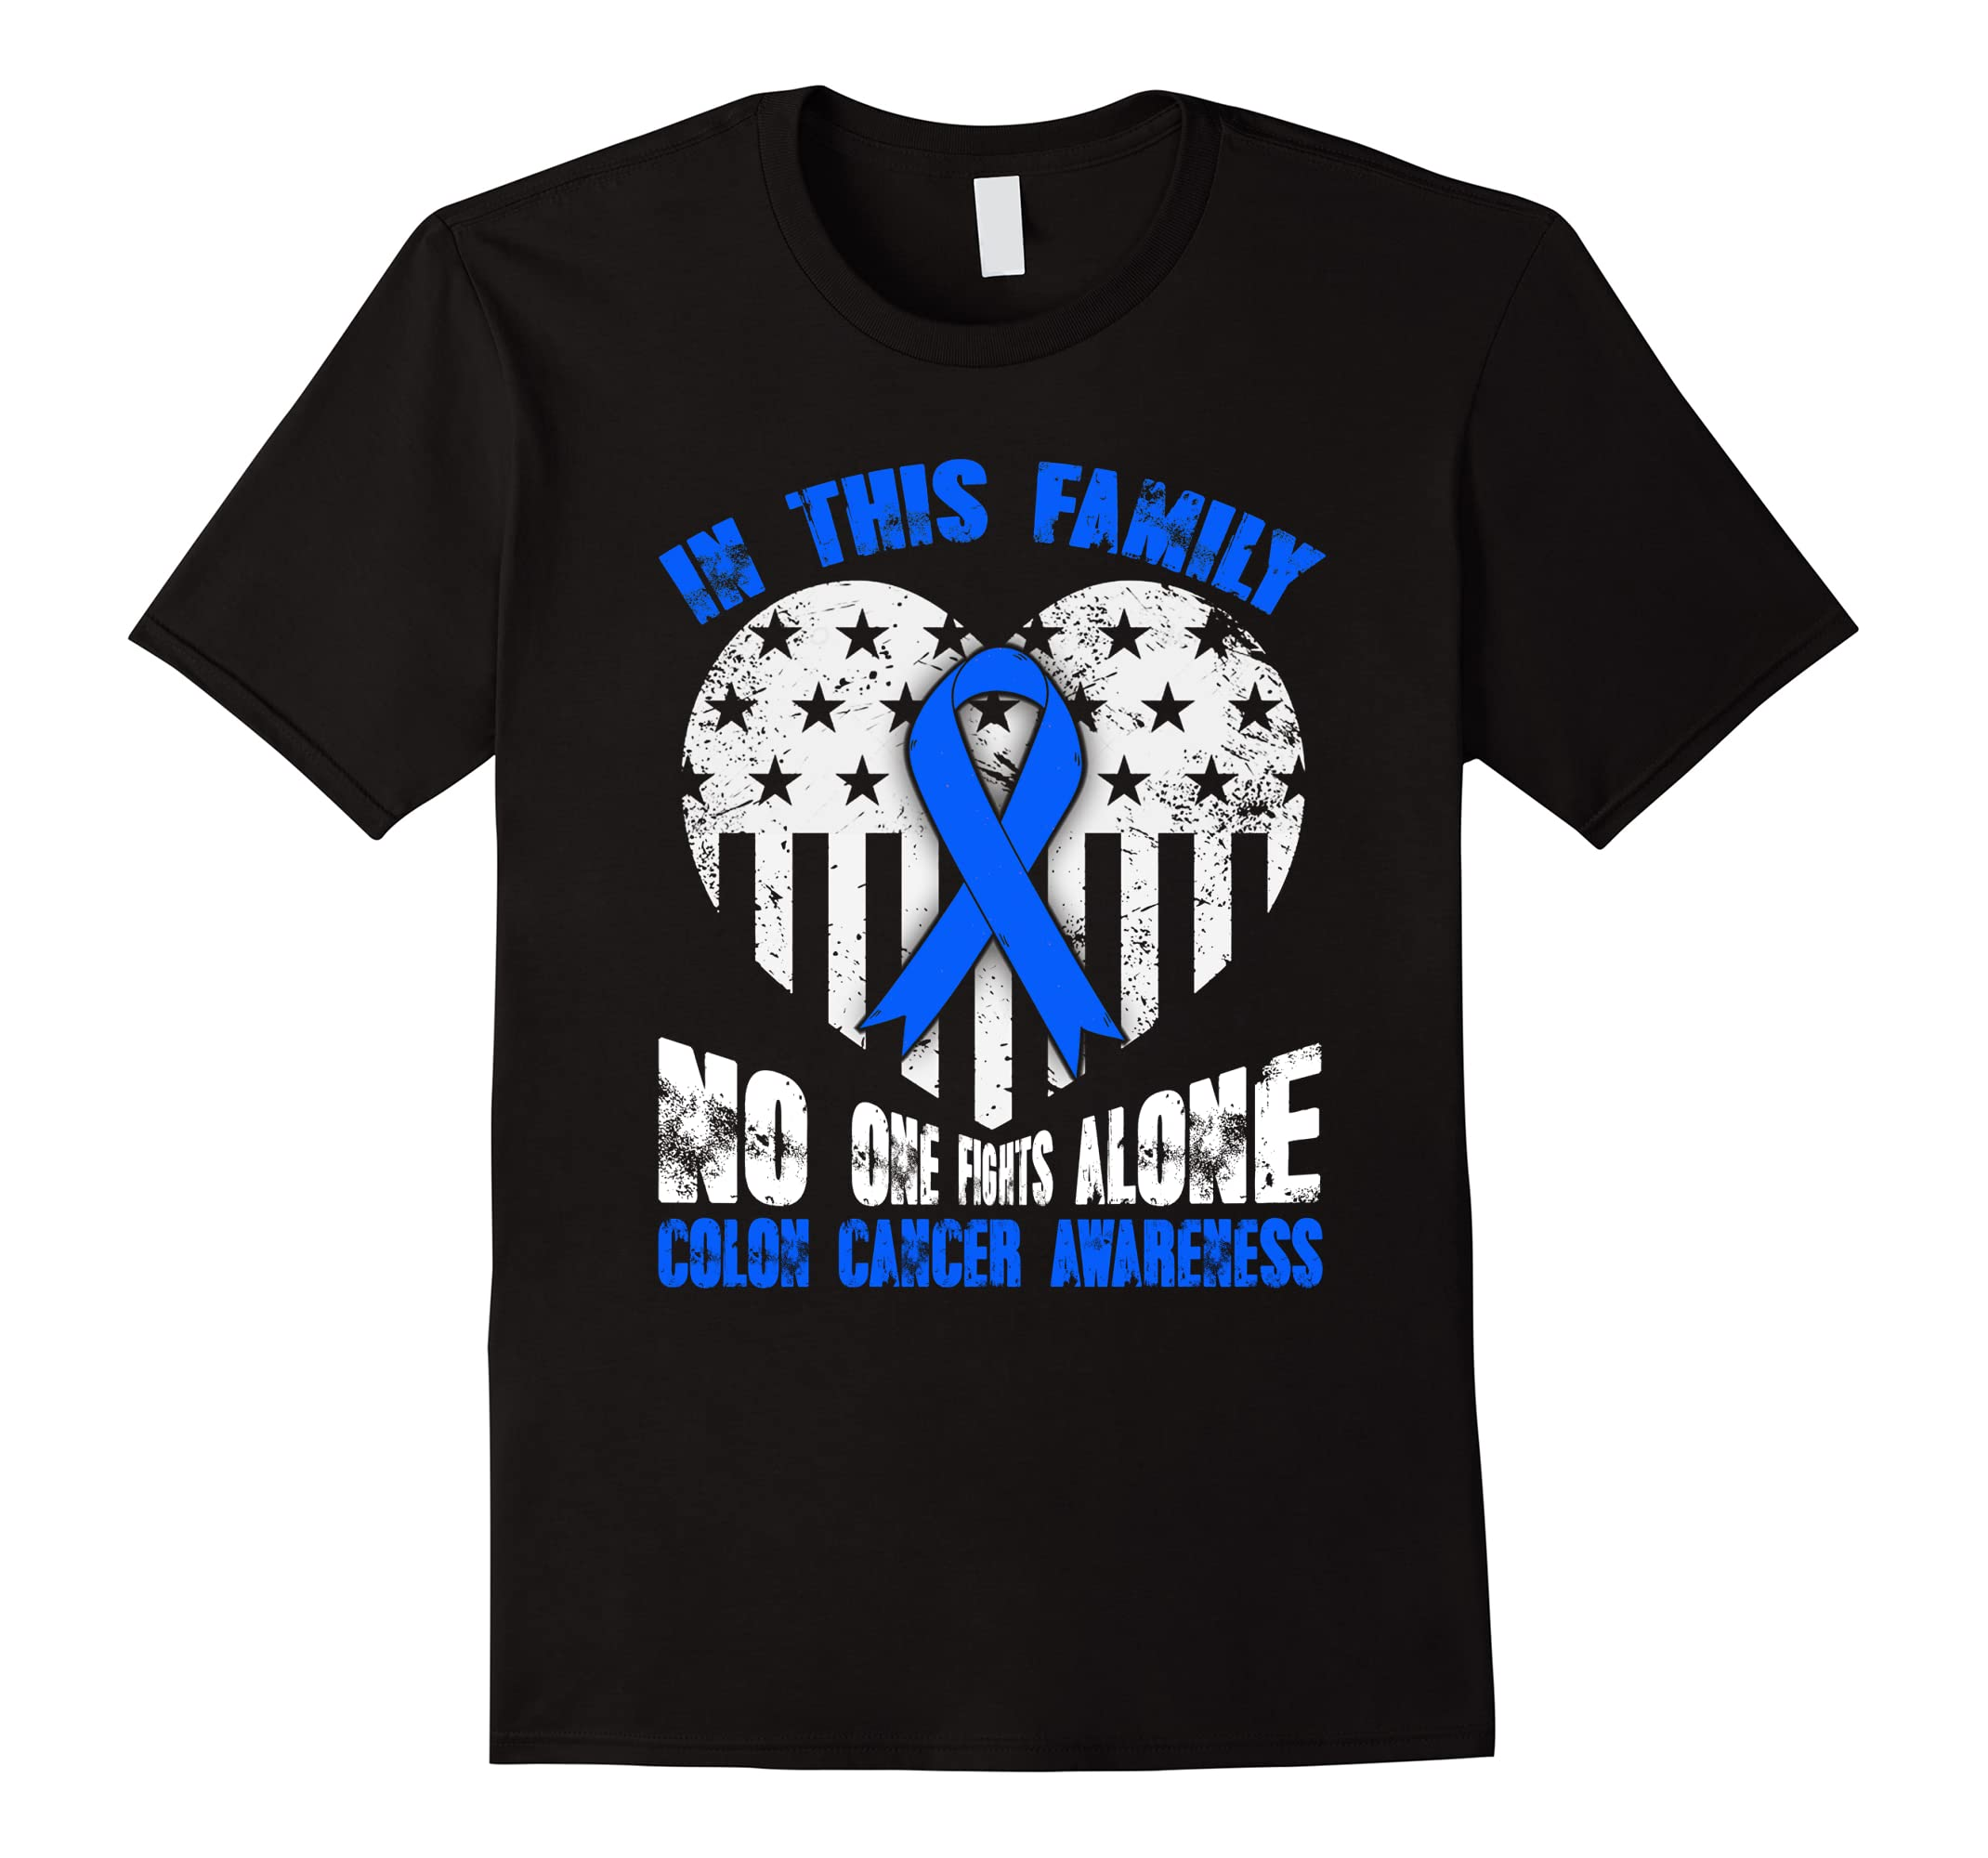 In this family no ones fights Colon Cancer alone t-shirt-RT